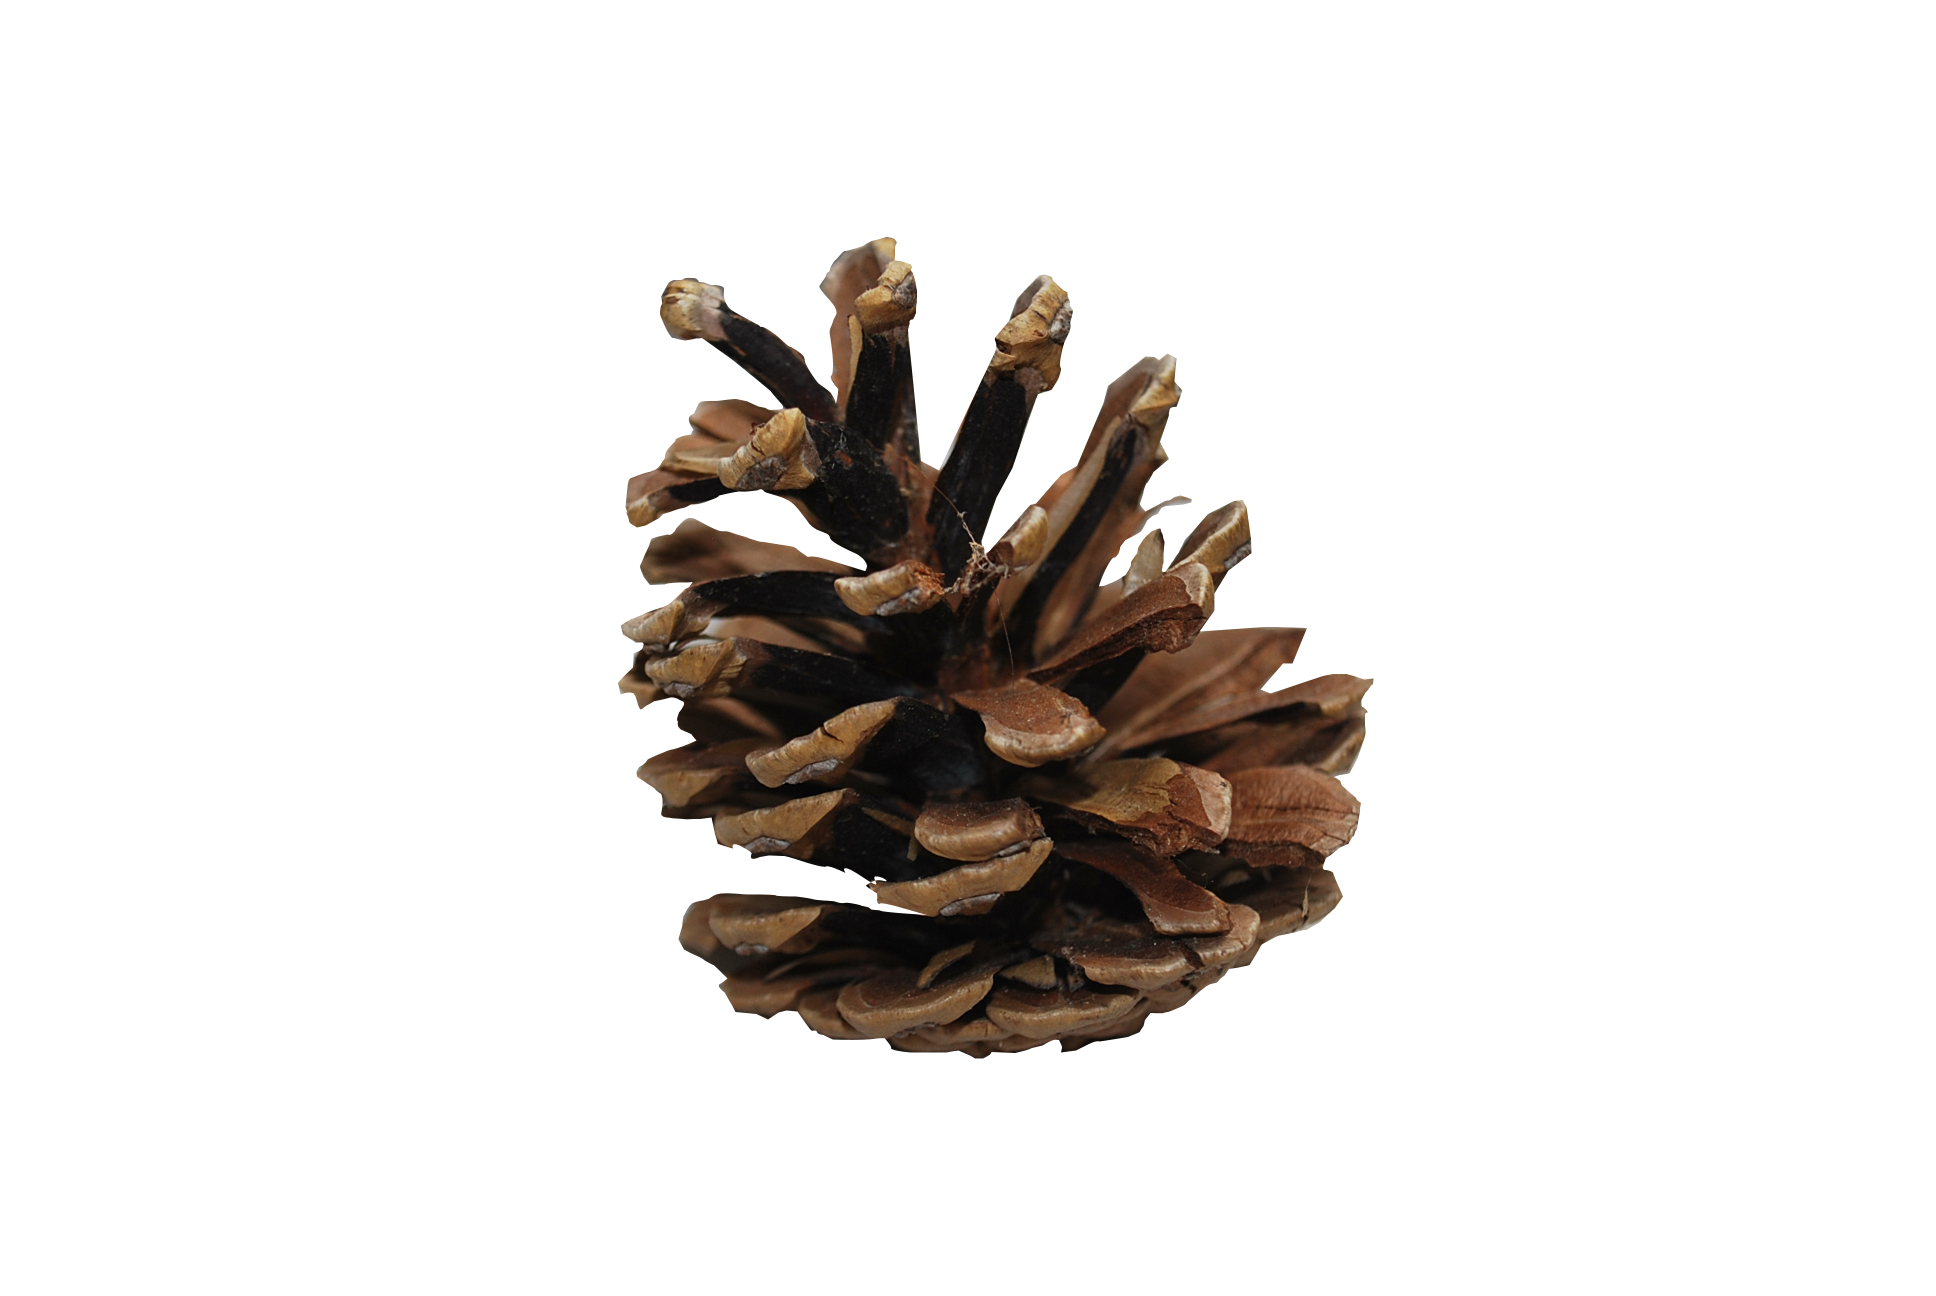 Pine cones png. Cone image free download